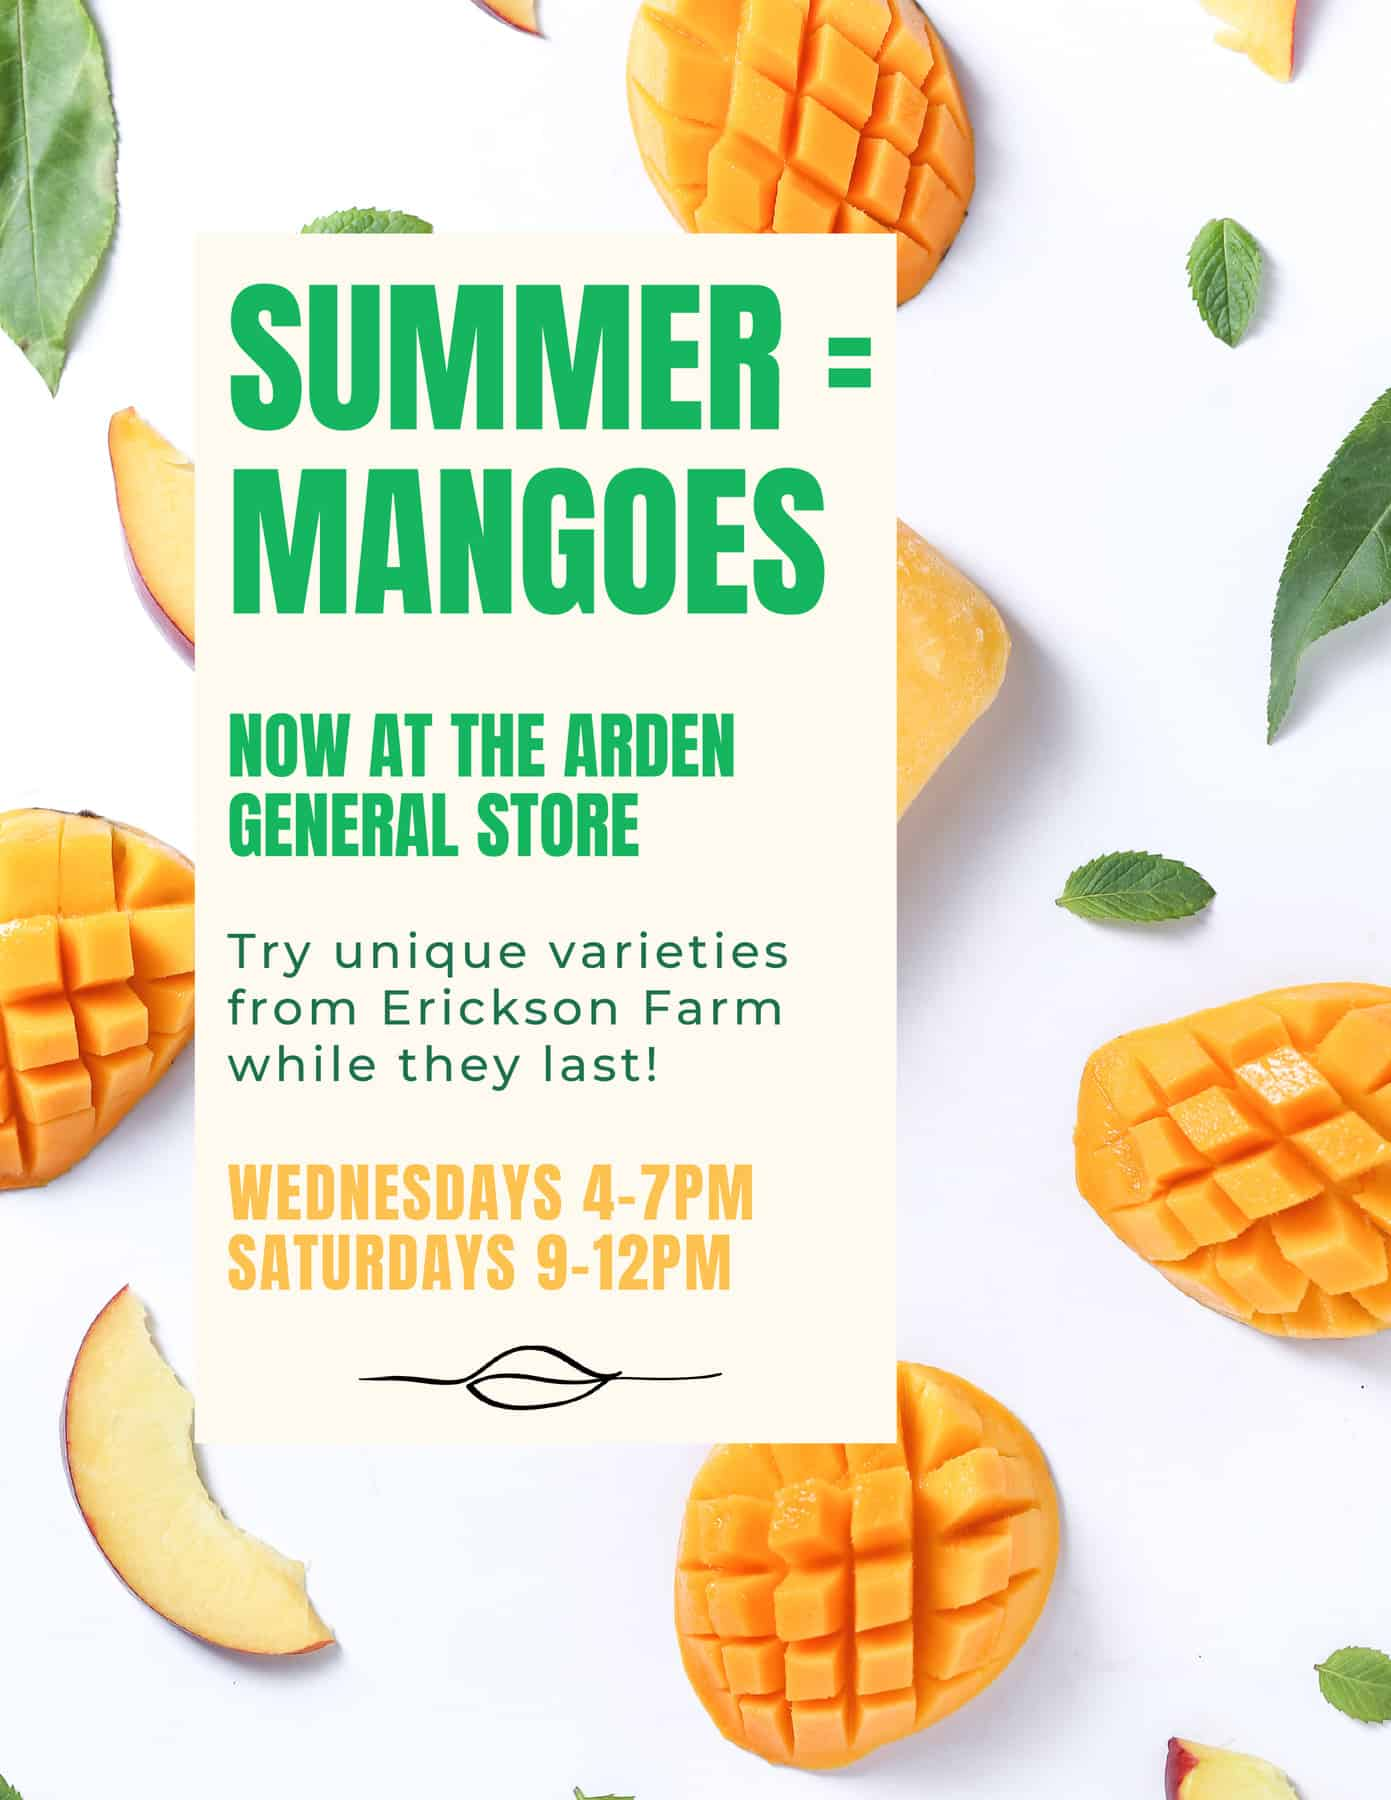 Summer = Mangoes